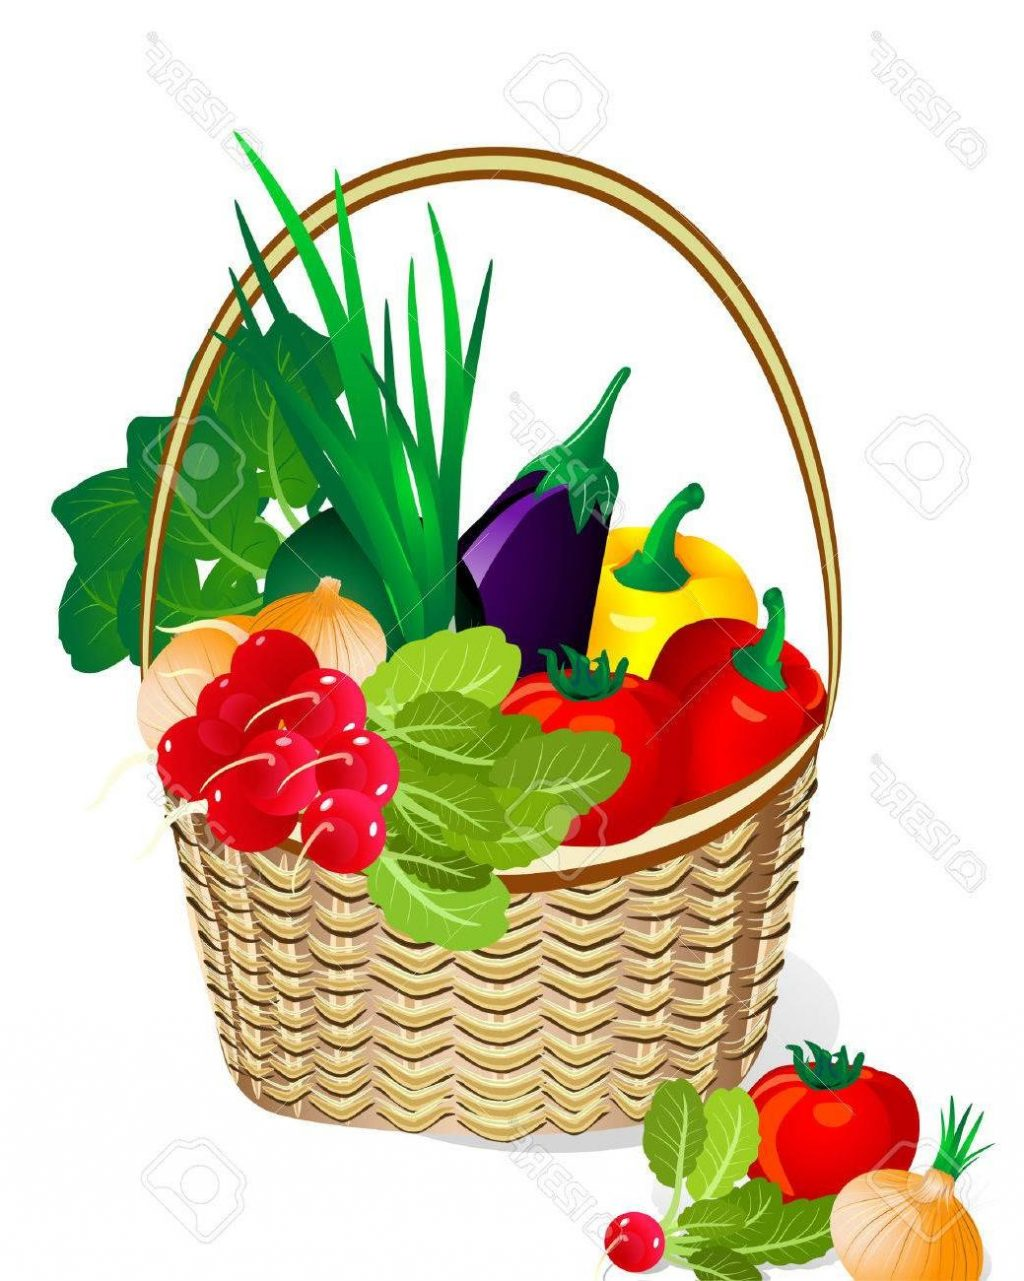 1024x1281 Top 10 Vegetables In The Basket Stock Vector Vegetable Fruit Library